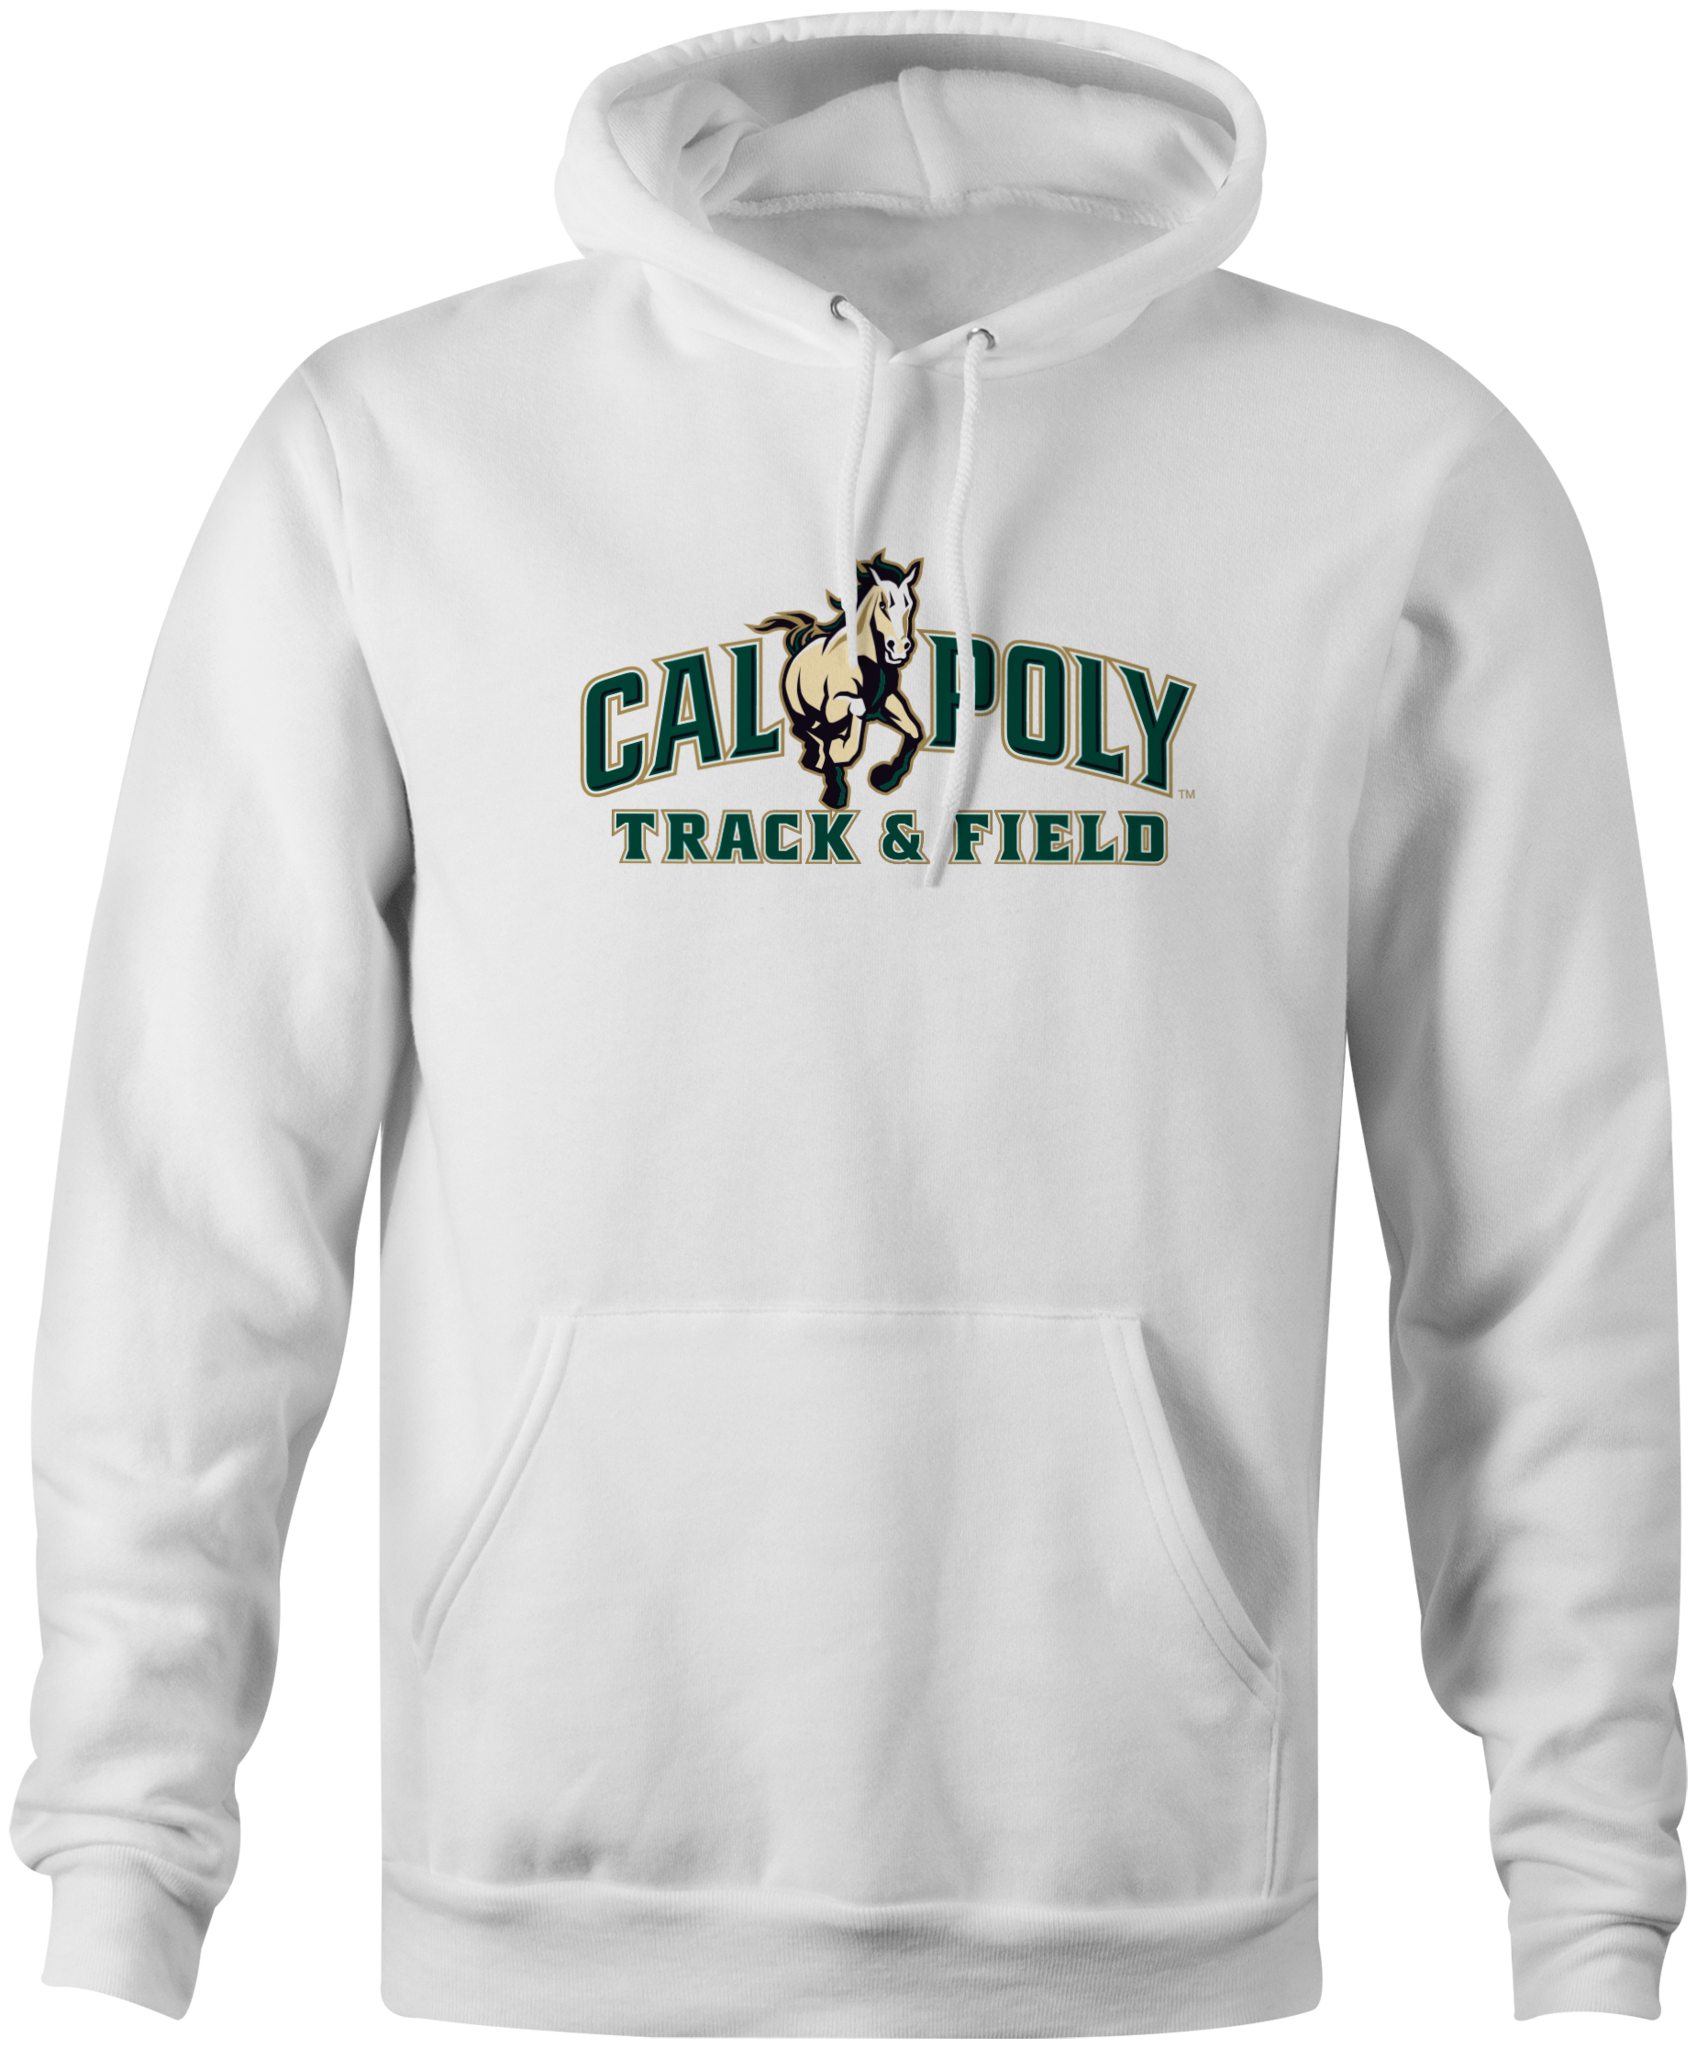 Cal Poly Track & Field 8 oz. Mid-Weight Hooded Sweatshirt